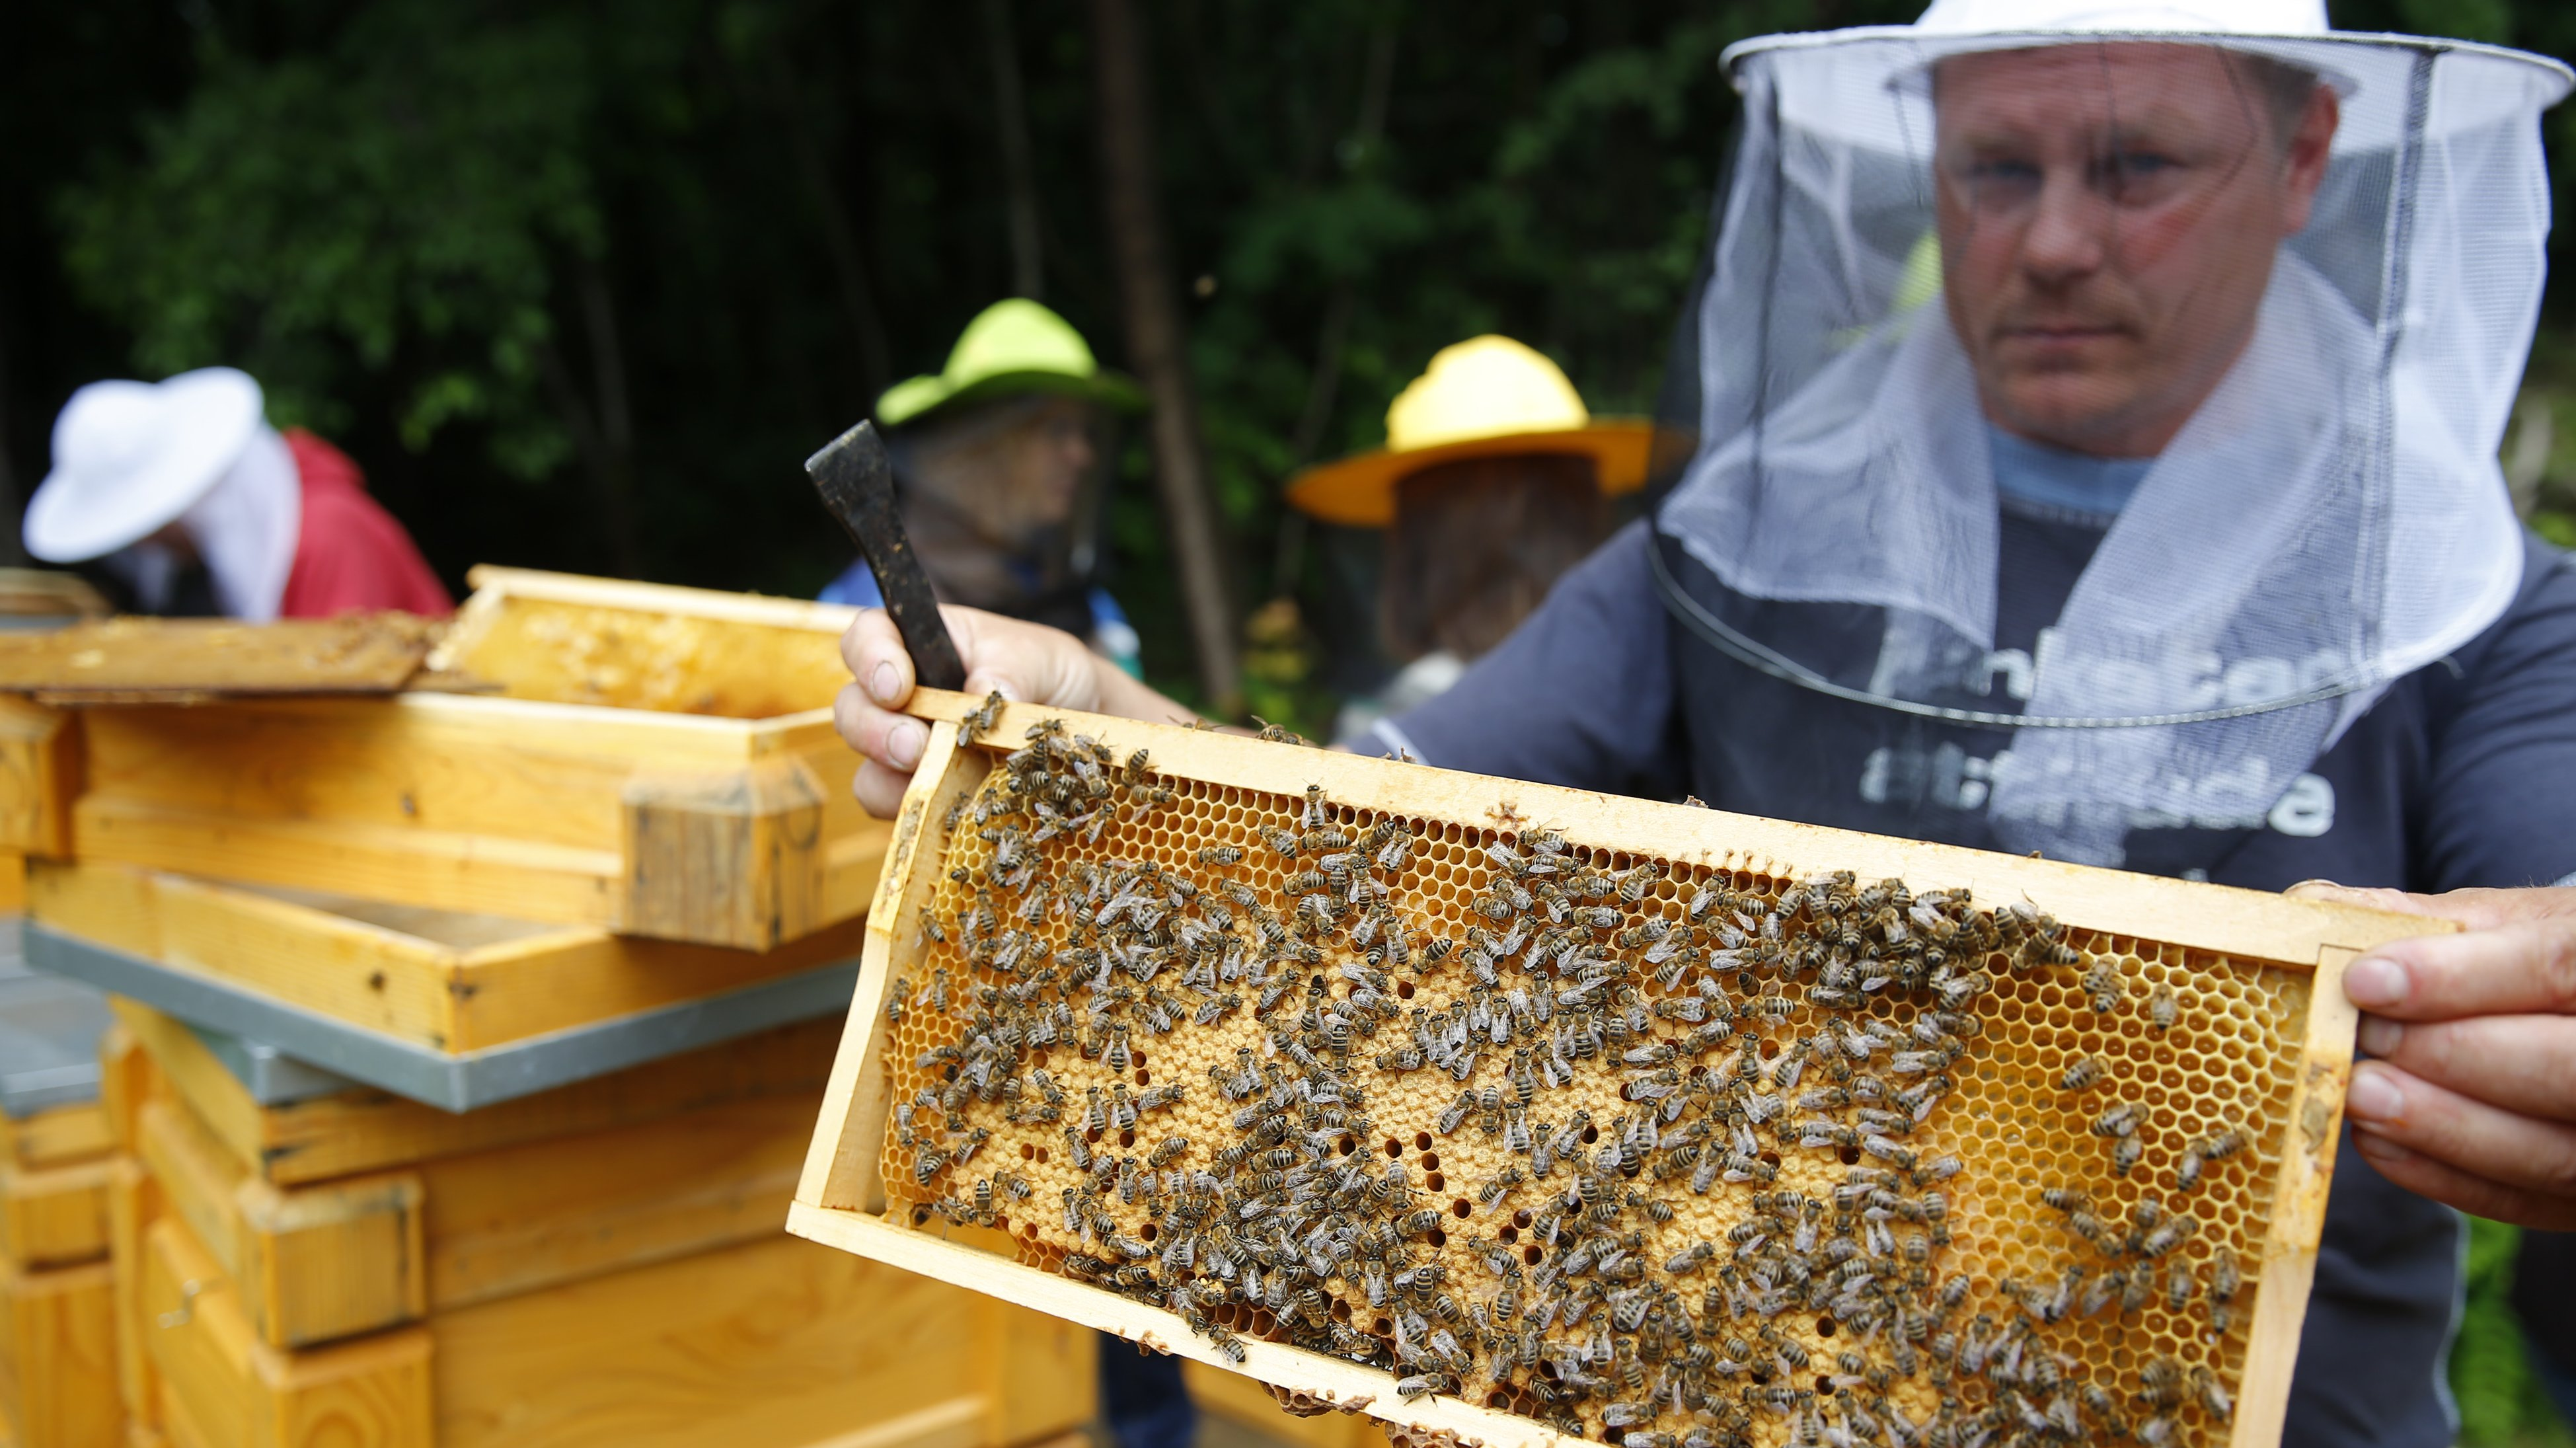 A beekeeping expert shows a beehive honeycomb frame at the Apiarian Research Centre in Godollo, 25 km east of the Hungarian capital Budapest, on June 5, 2013. Picture taken July 5, 2013. REUTERS/Laszlo Balogh (HUNGARY - Tags: ENVIRONMENT ANIMALS) - RTR3KF8P